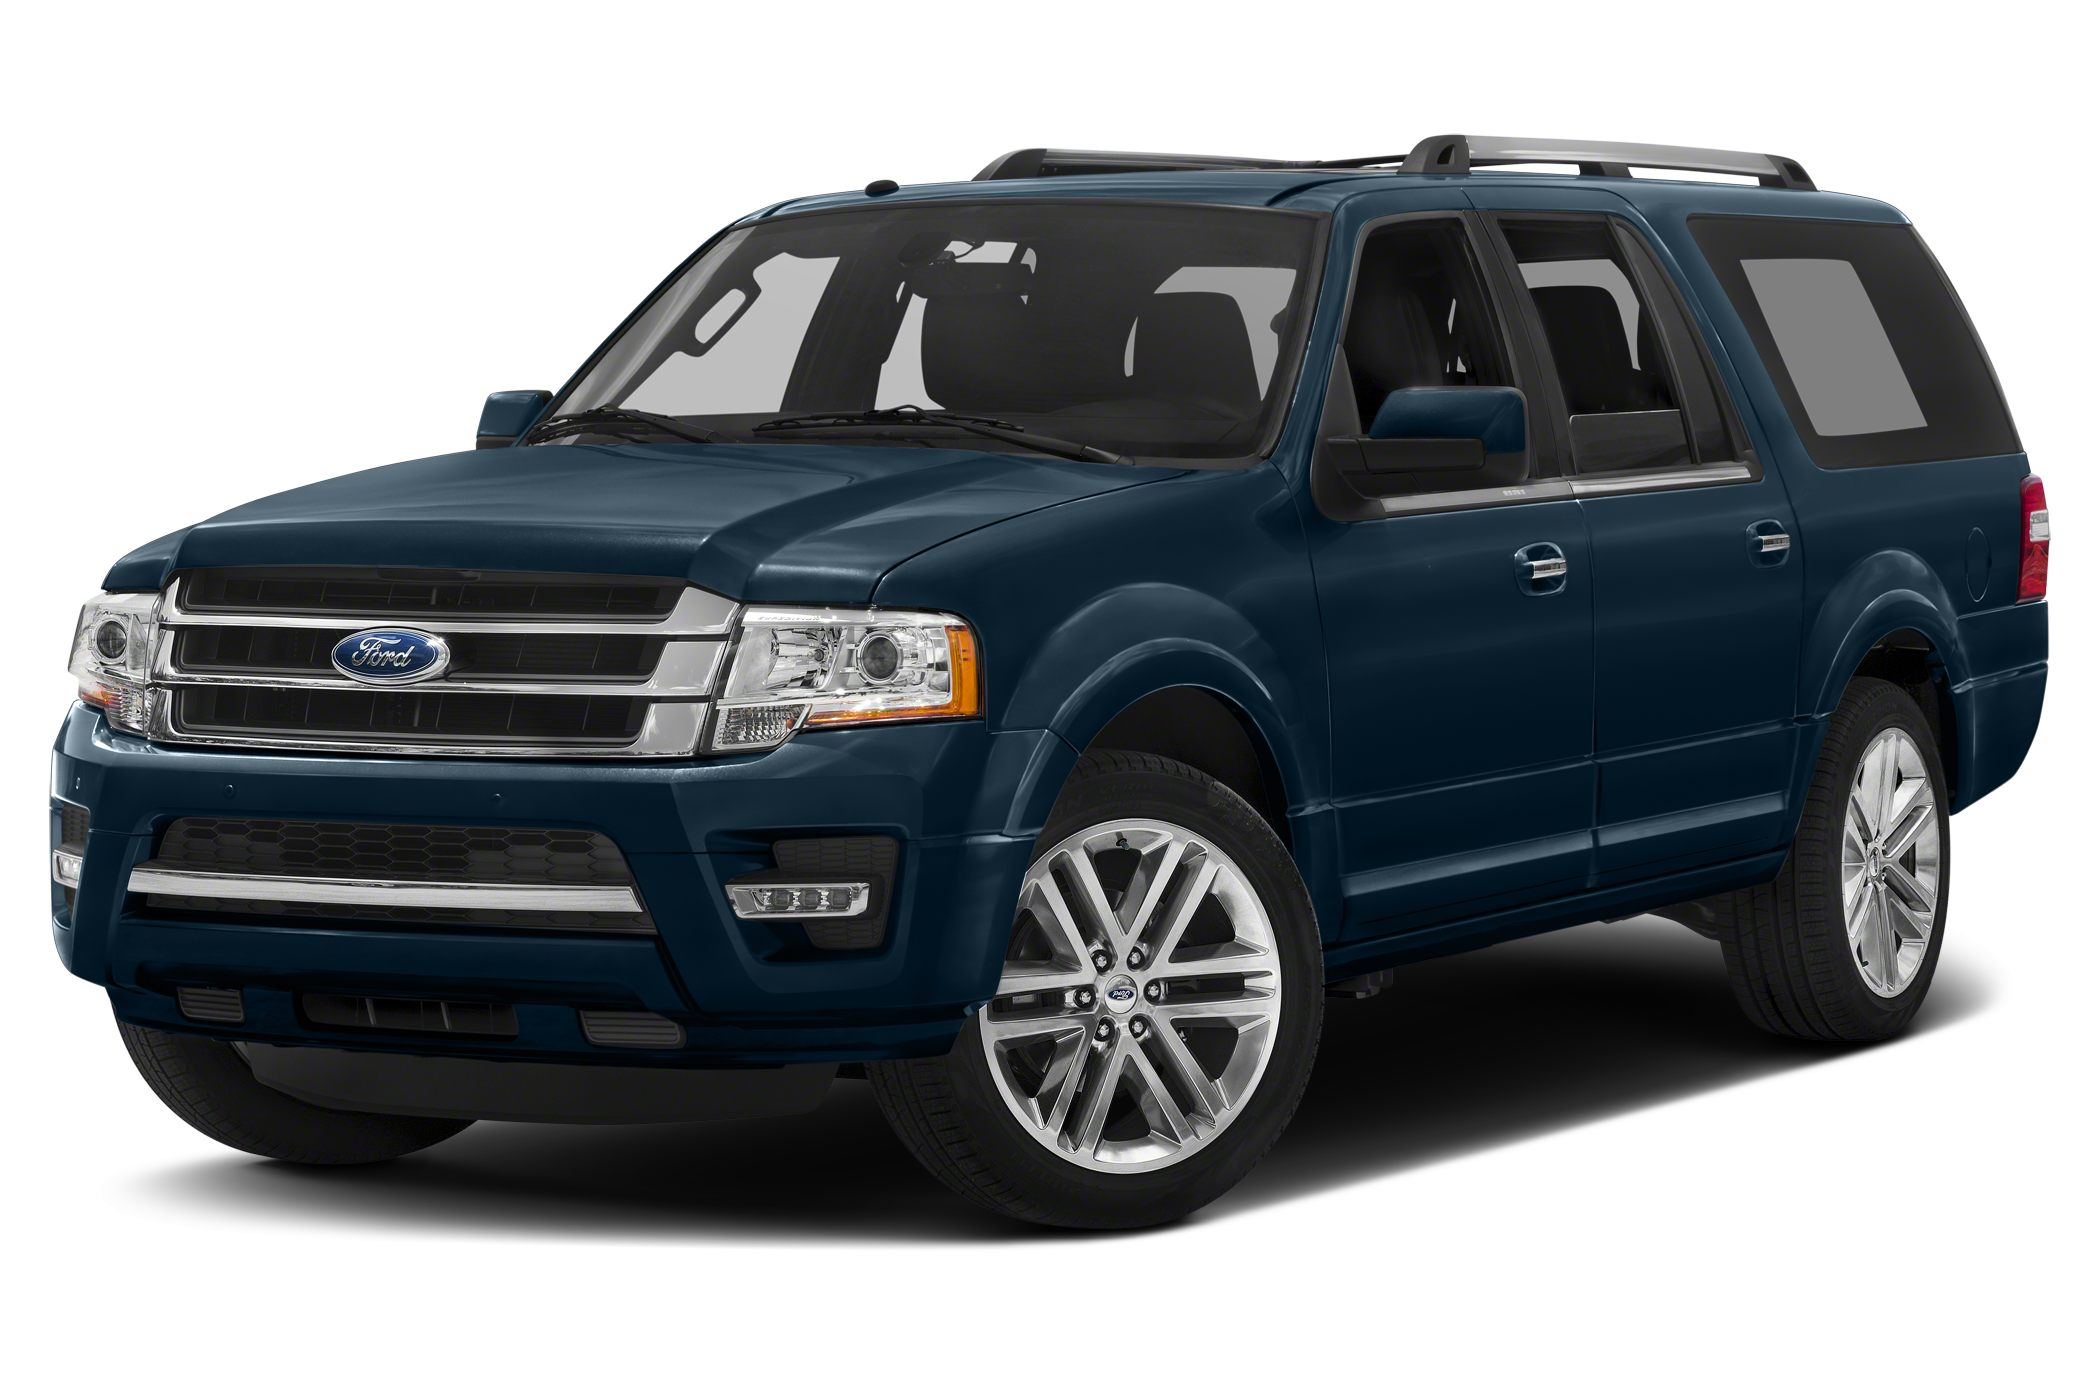 2017 ford expedition el limited cars and vehicles vinita ok. Black Bedroom Furniture Sets. Home Design Ideas